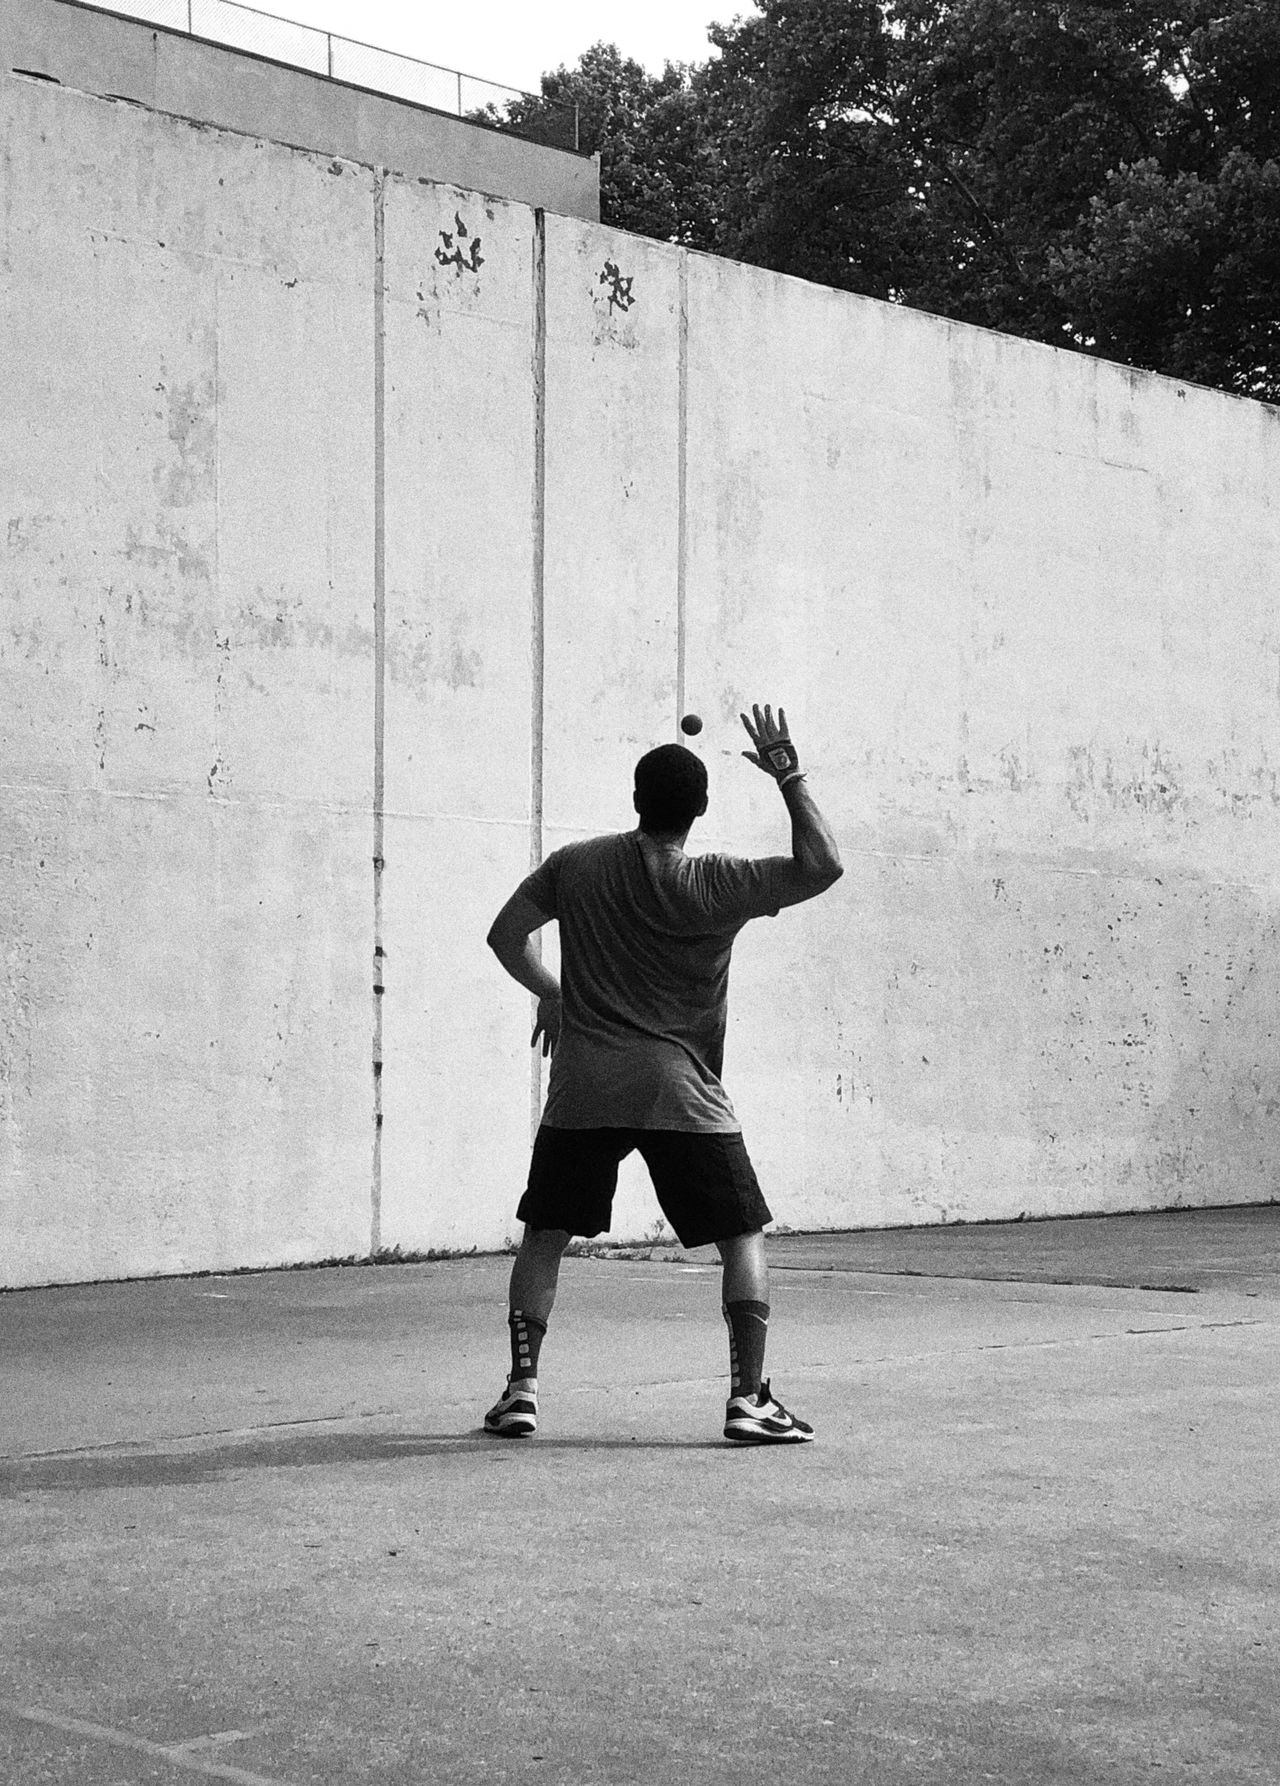 Rear view of man playing in handball court